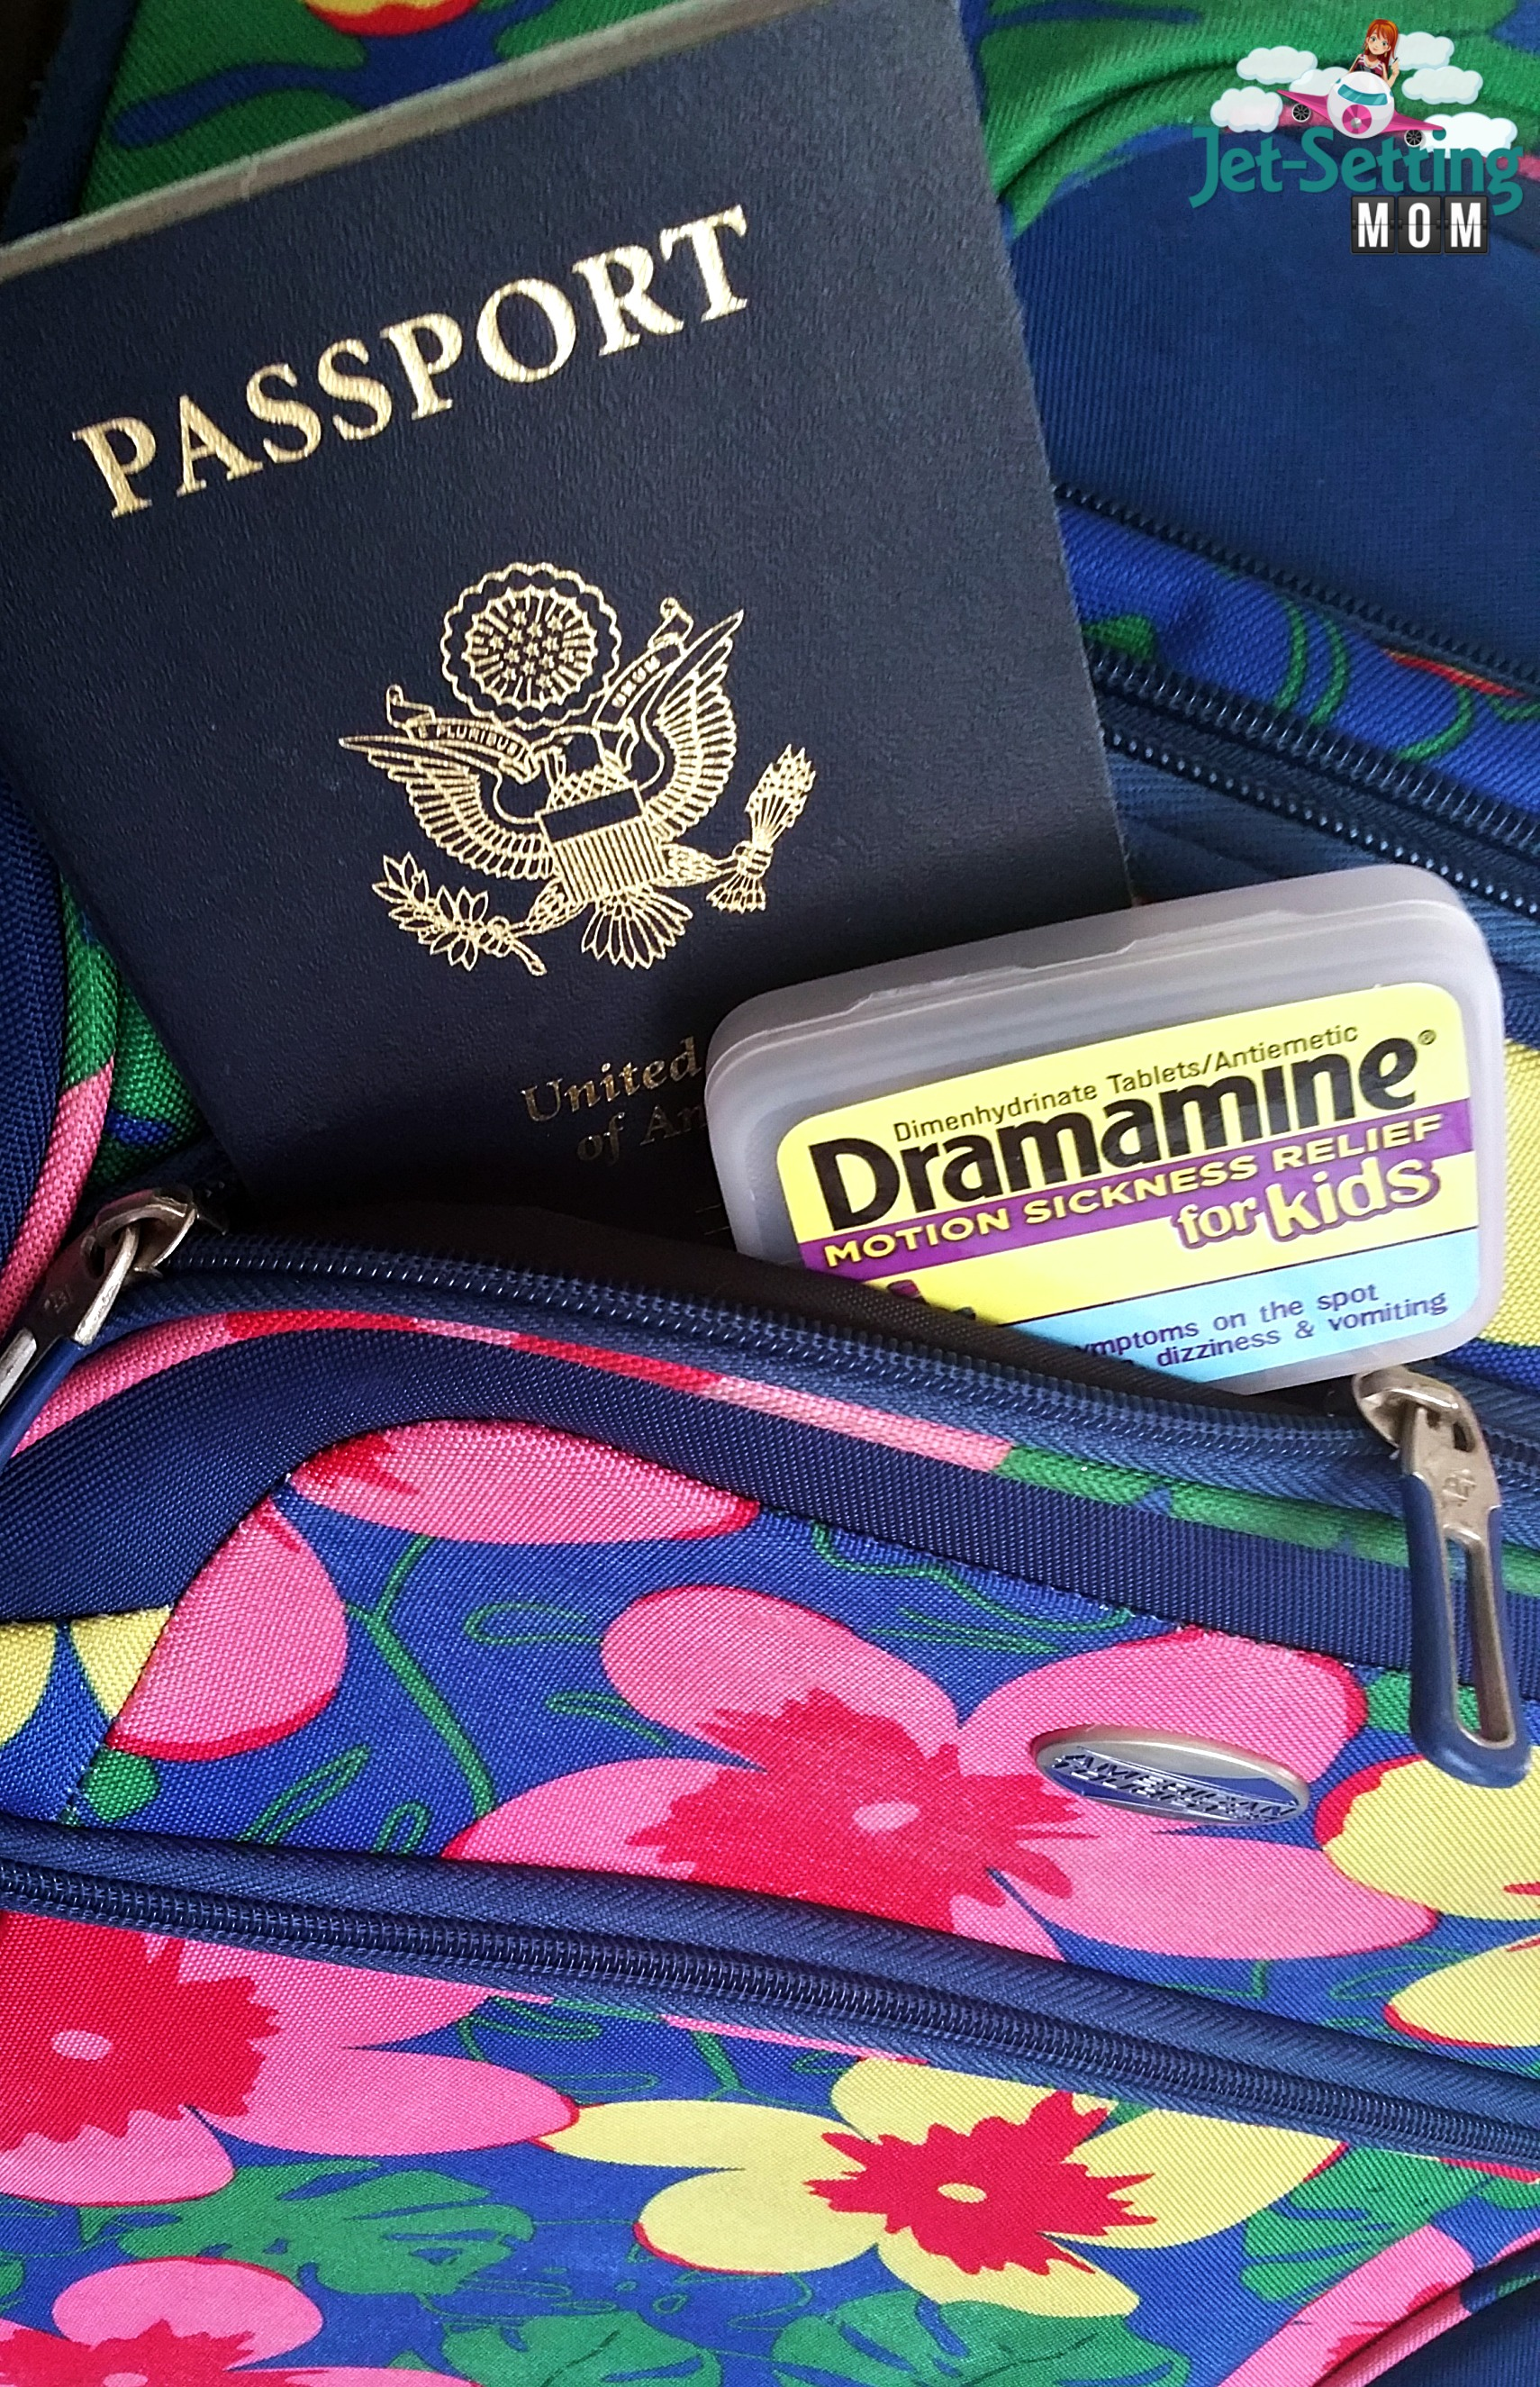 Dramamine® for Kids is a great way to keep travels fun. #AdventuresInMotion #ad #IC #travel #kids